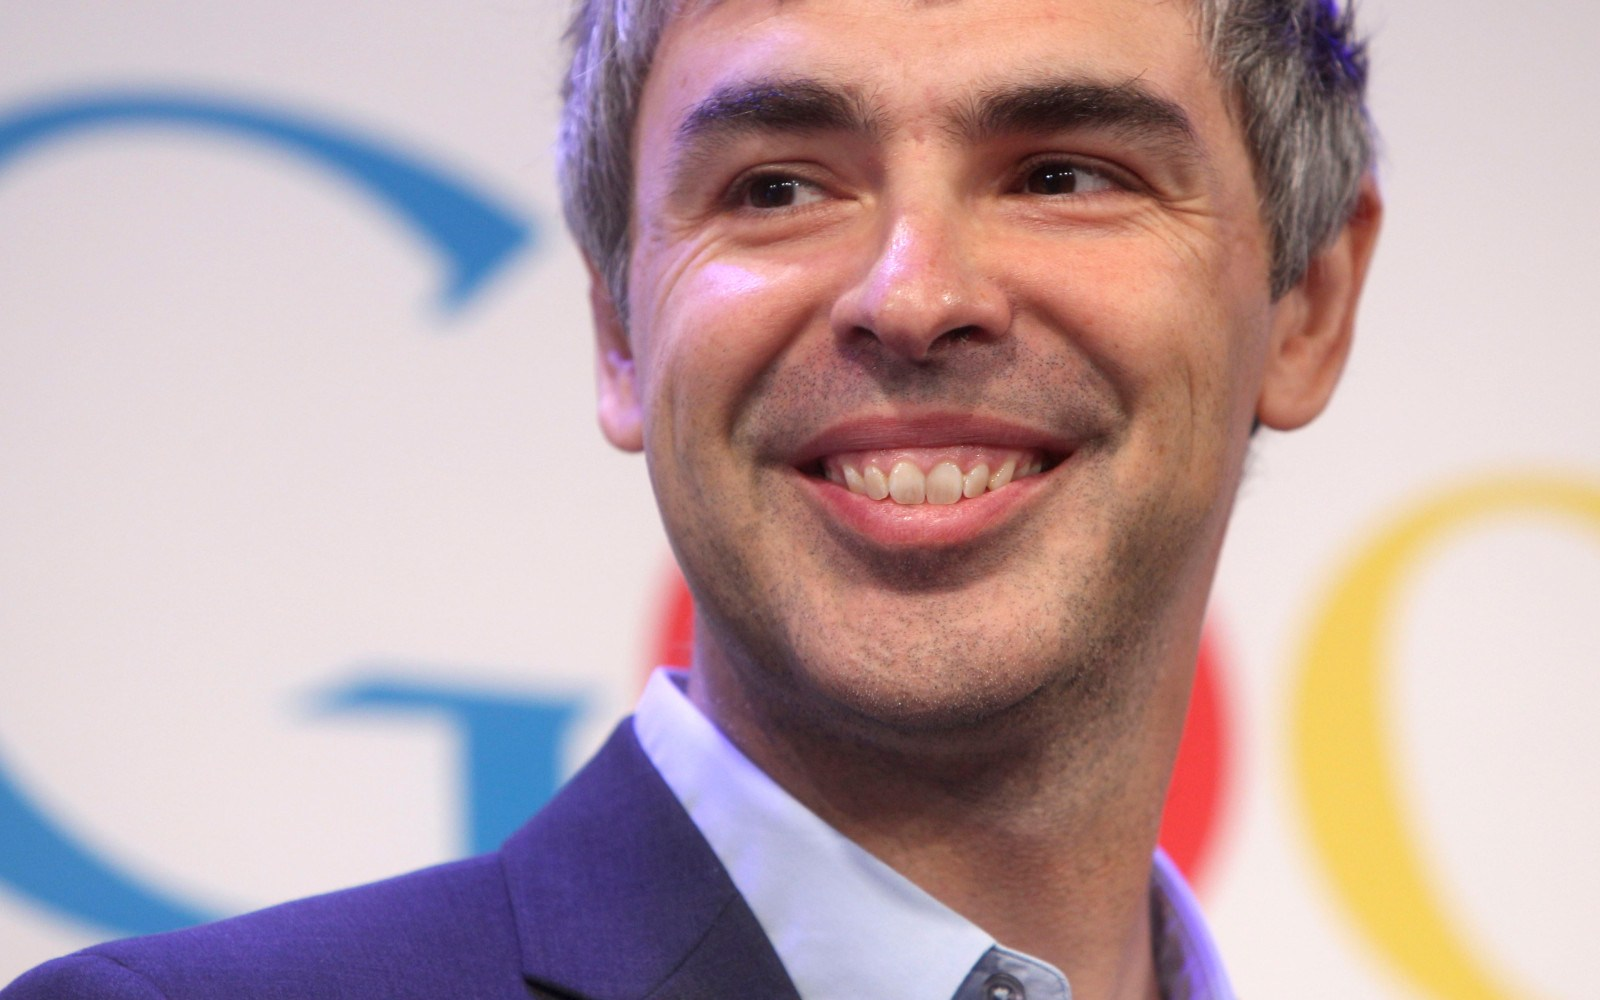 Larry Page to join tech leaders at Trump's tech summit